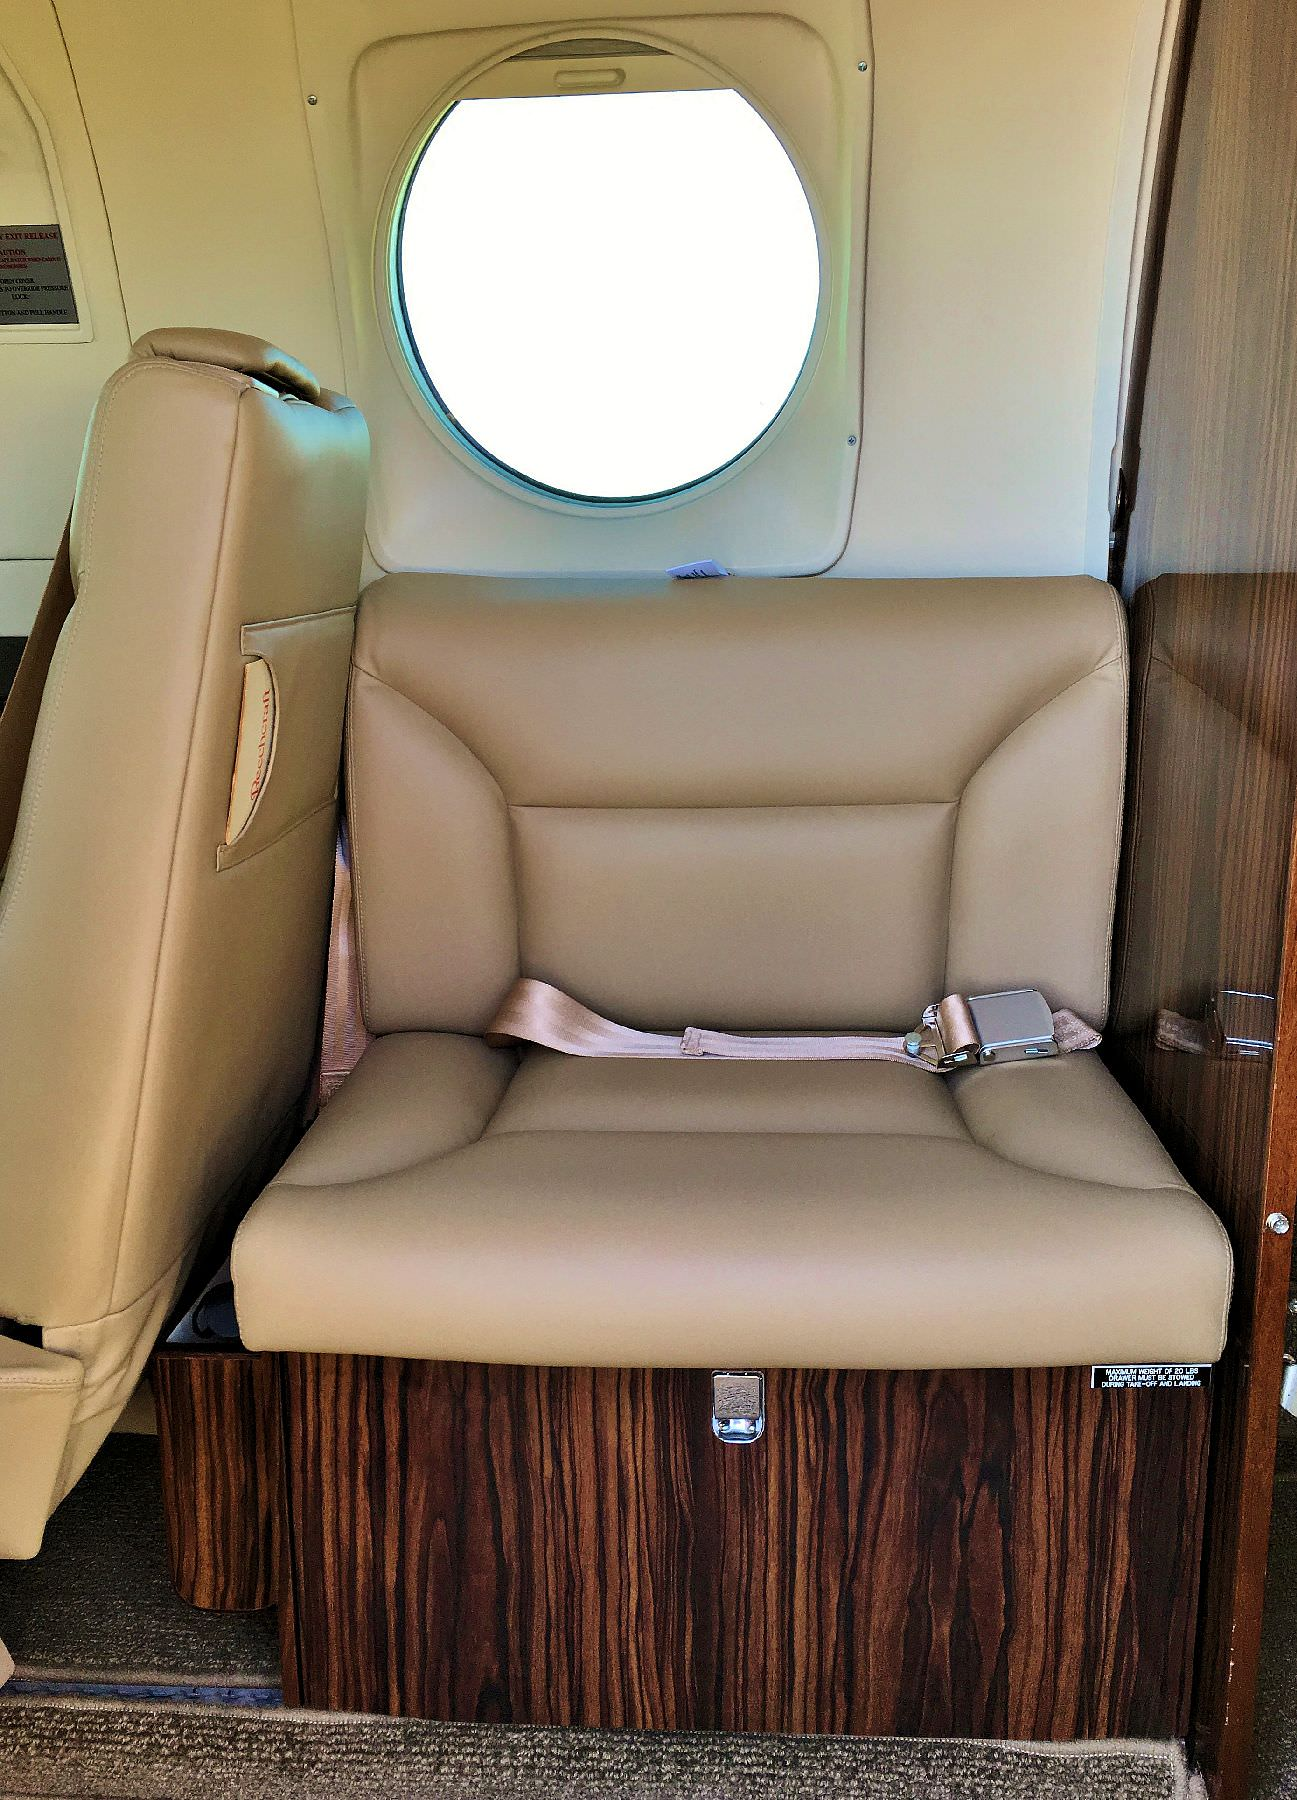 AvFab's one place King Air Side Facing Seat is extremely versatile as it allows the forward facing RH seat to recline on KA90's while saving weight over OEM seat.  The included shoulder harness adds a margin of safety over the OEM seat.  AvFab's Side Facin